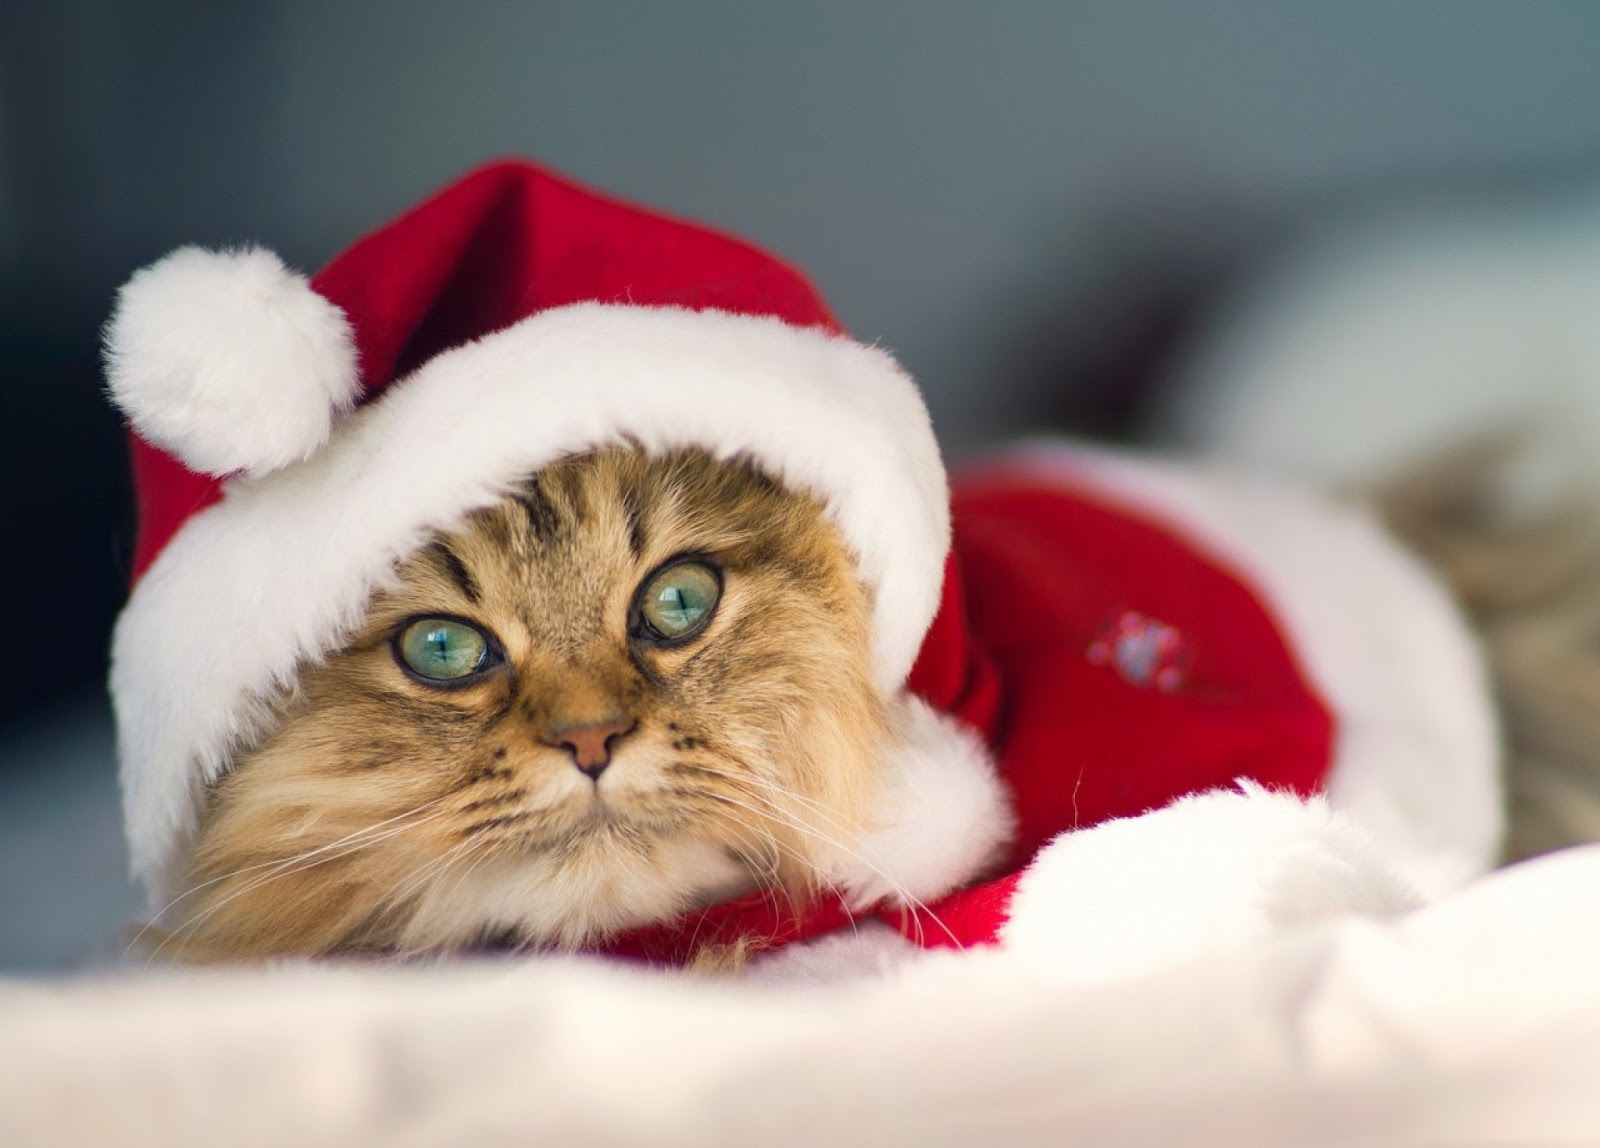 Merry Christmas Images Cute Cats Dressed In Santa Hat Costume